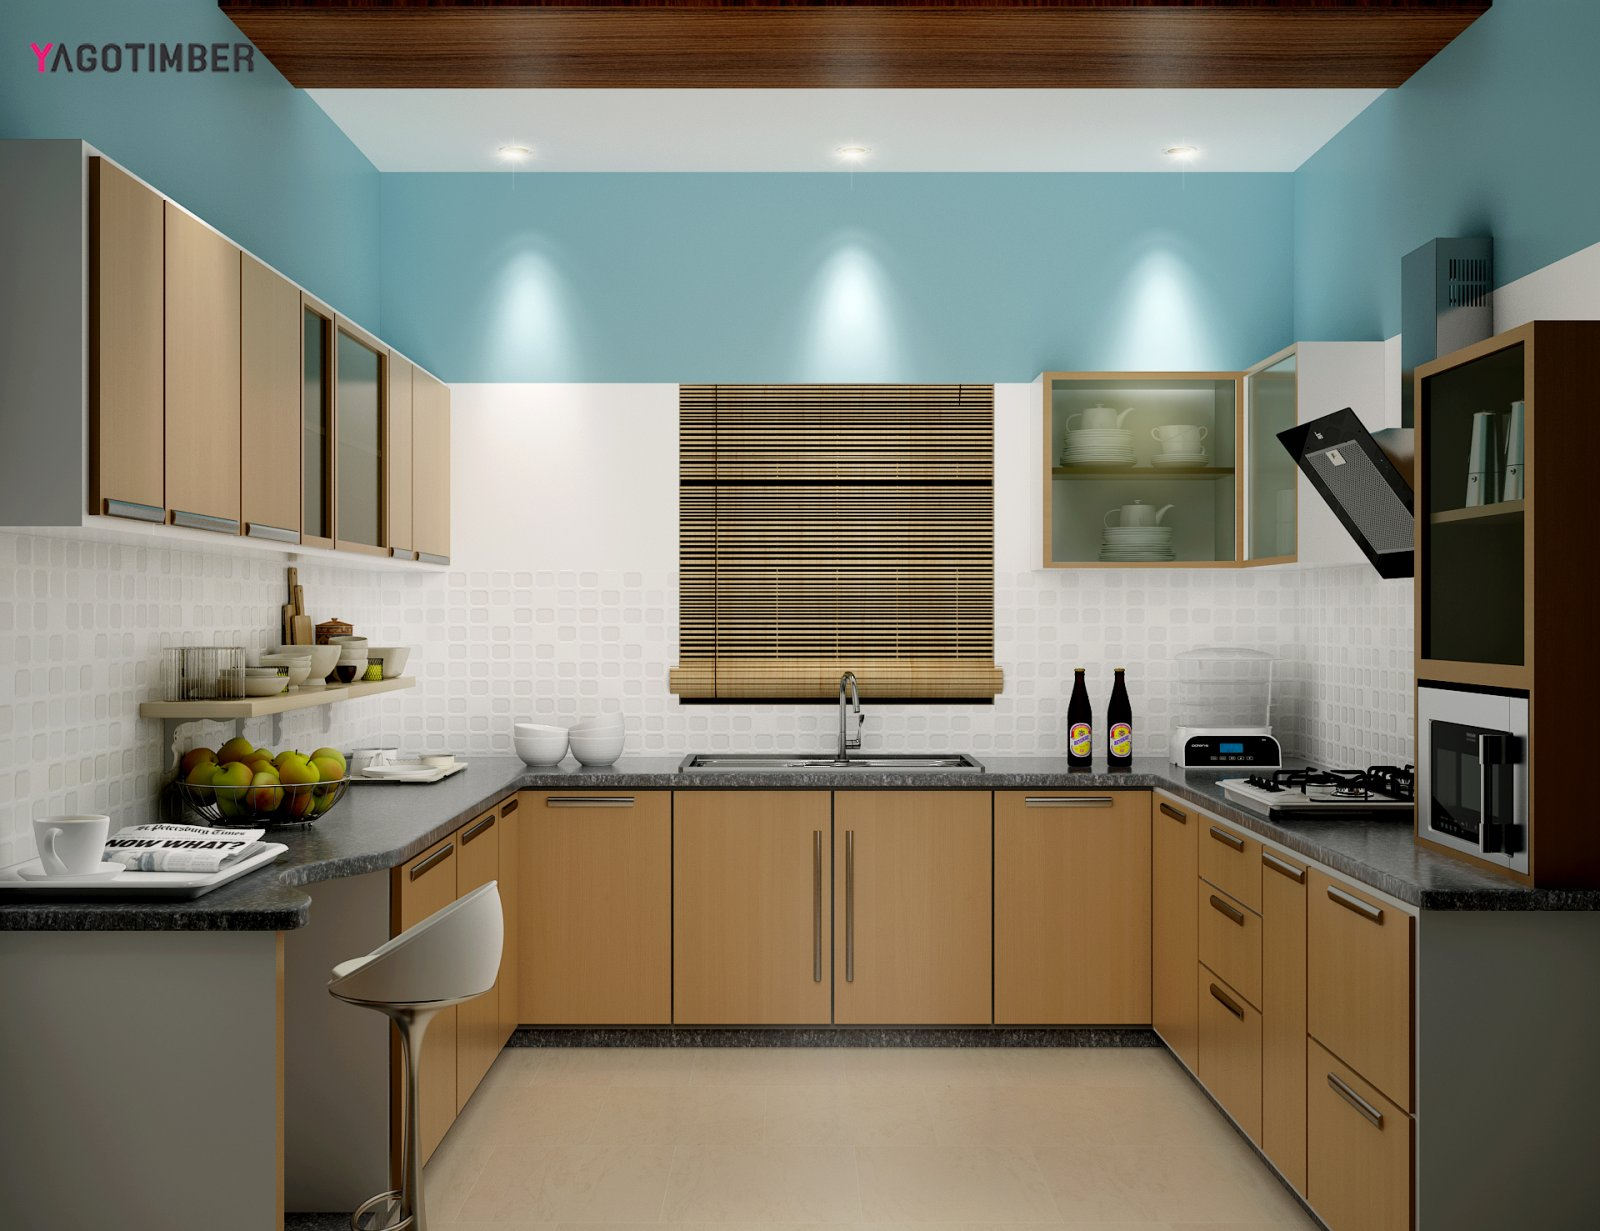 Get U Shaped Kitchen Design in Turqouise Color in Delhi NCR - Yagotimber